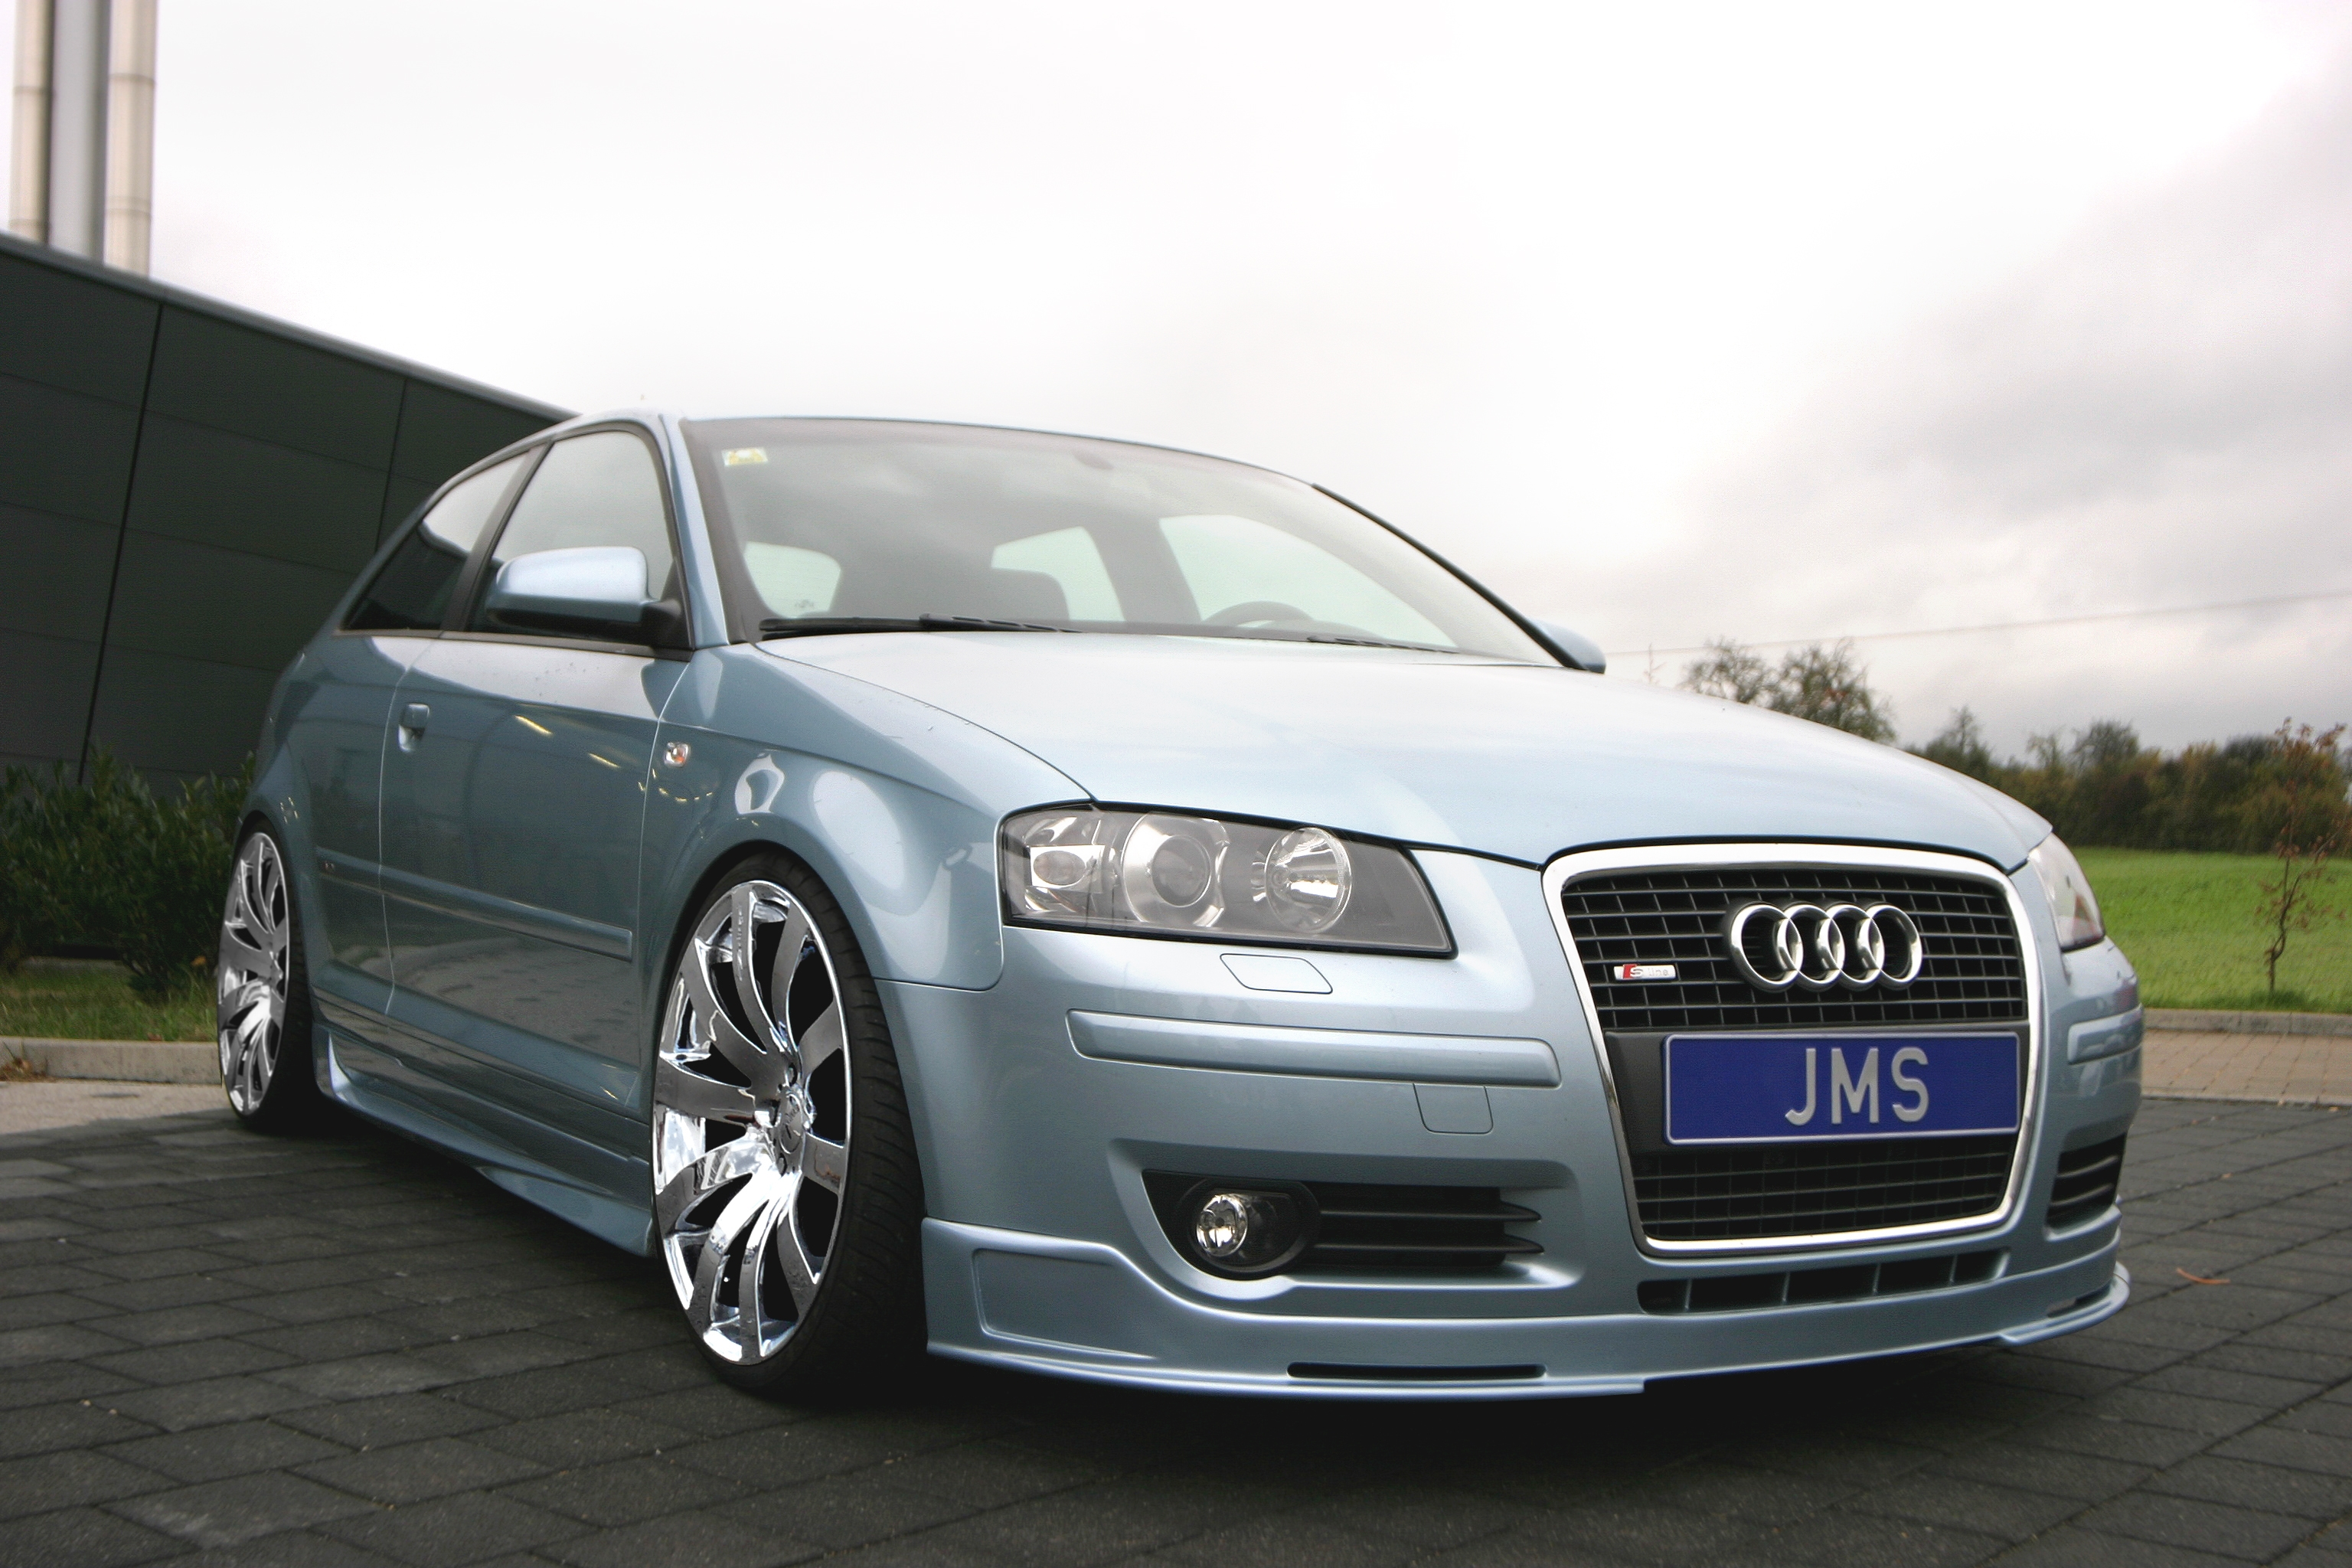 2008 audi a3 8p facelift by jms pictures photos. Black Bedroom Furniture Sets. Home Design Ideas